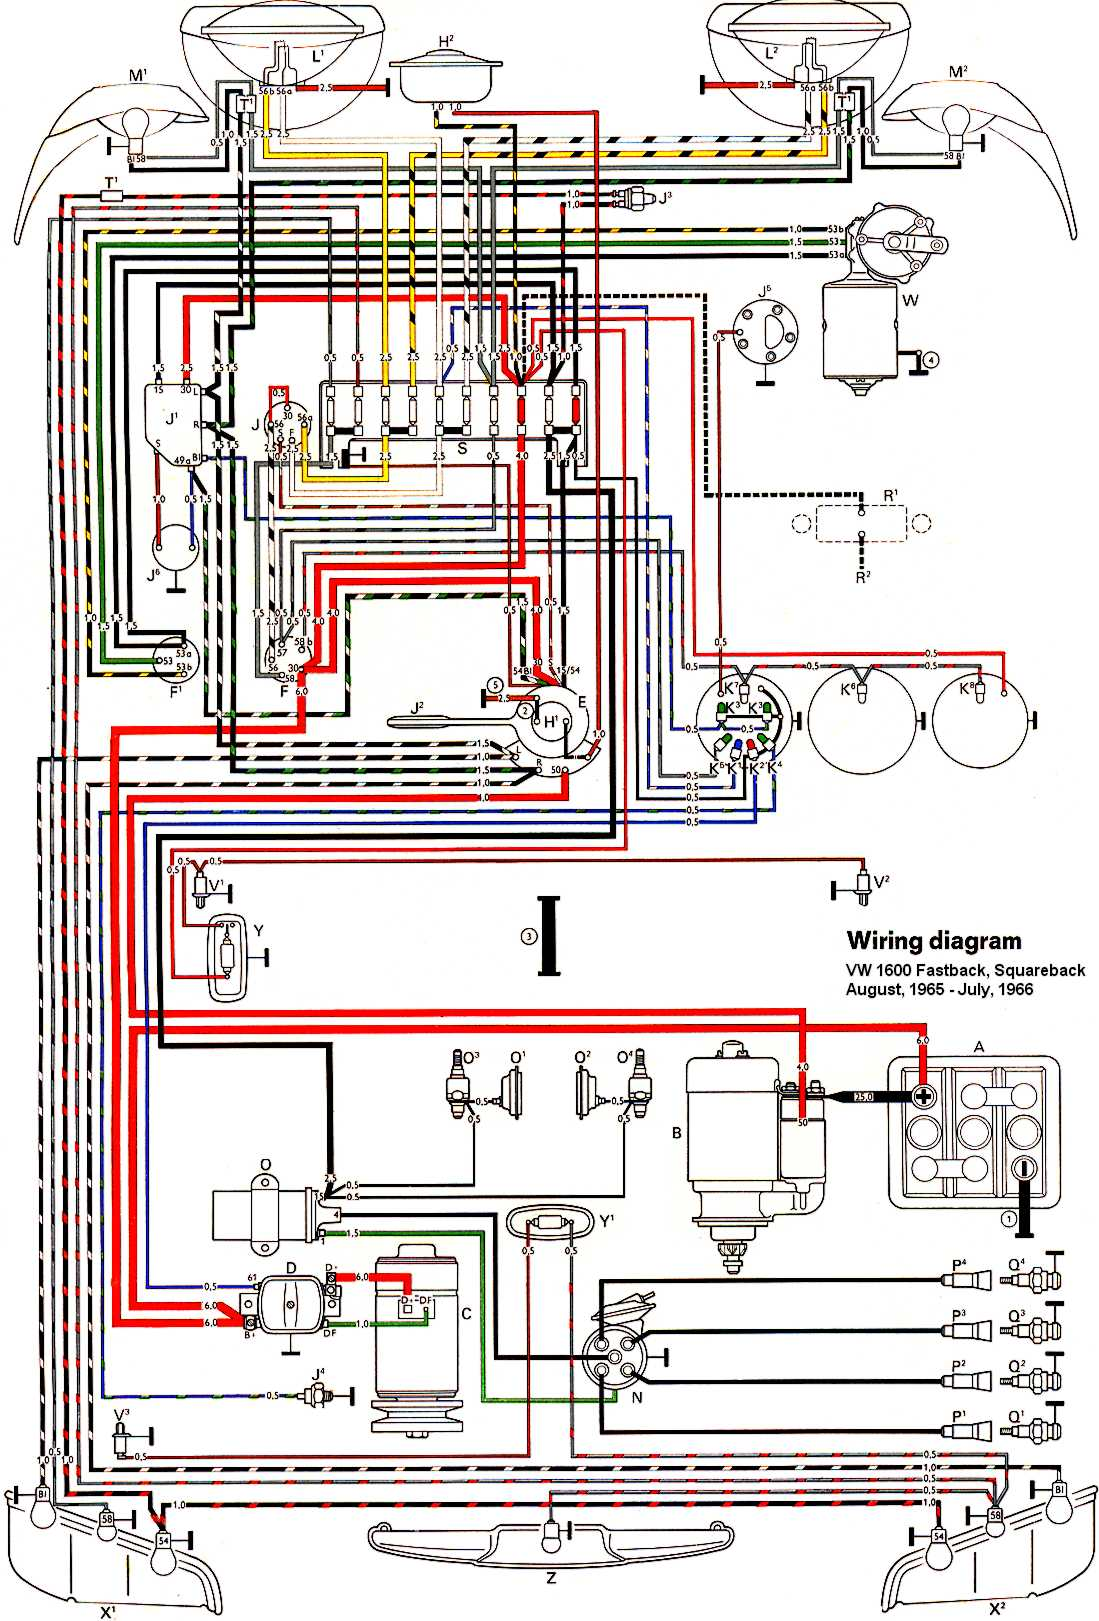 66 vw transporter wiring diagram opinions about wiring diagram u2022 rh voterid co 1970 vw beetle wiring schematic 1970 vw beetle ignition wiring diagram